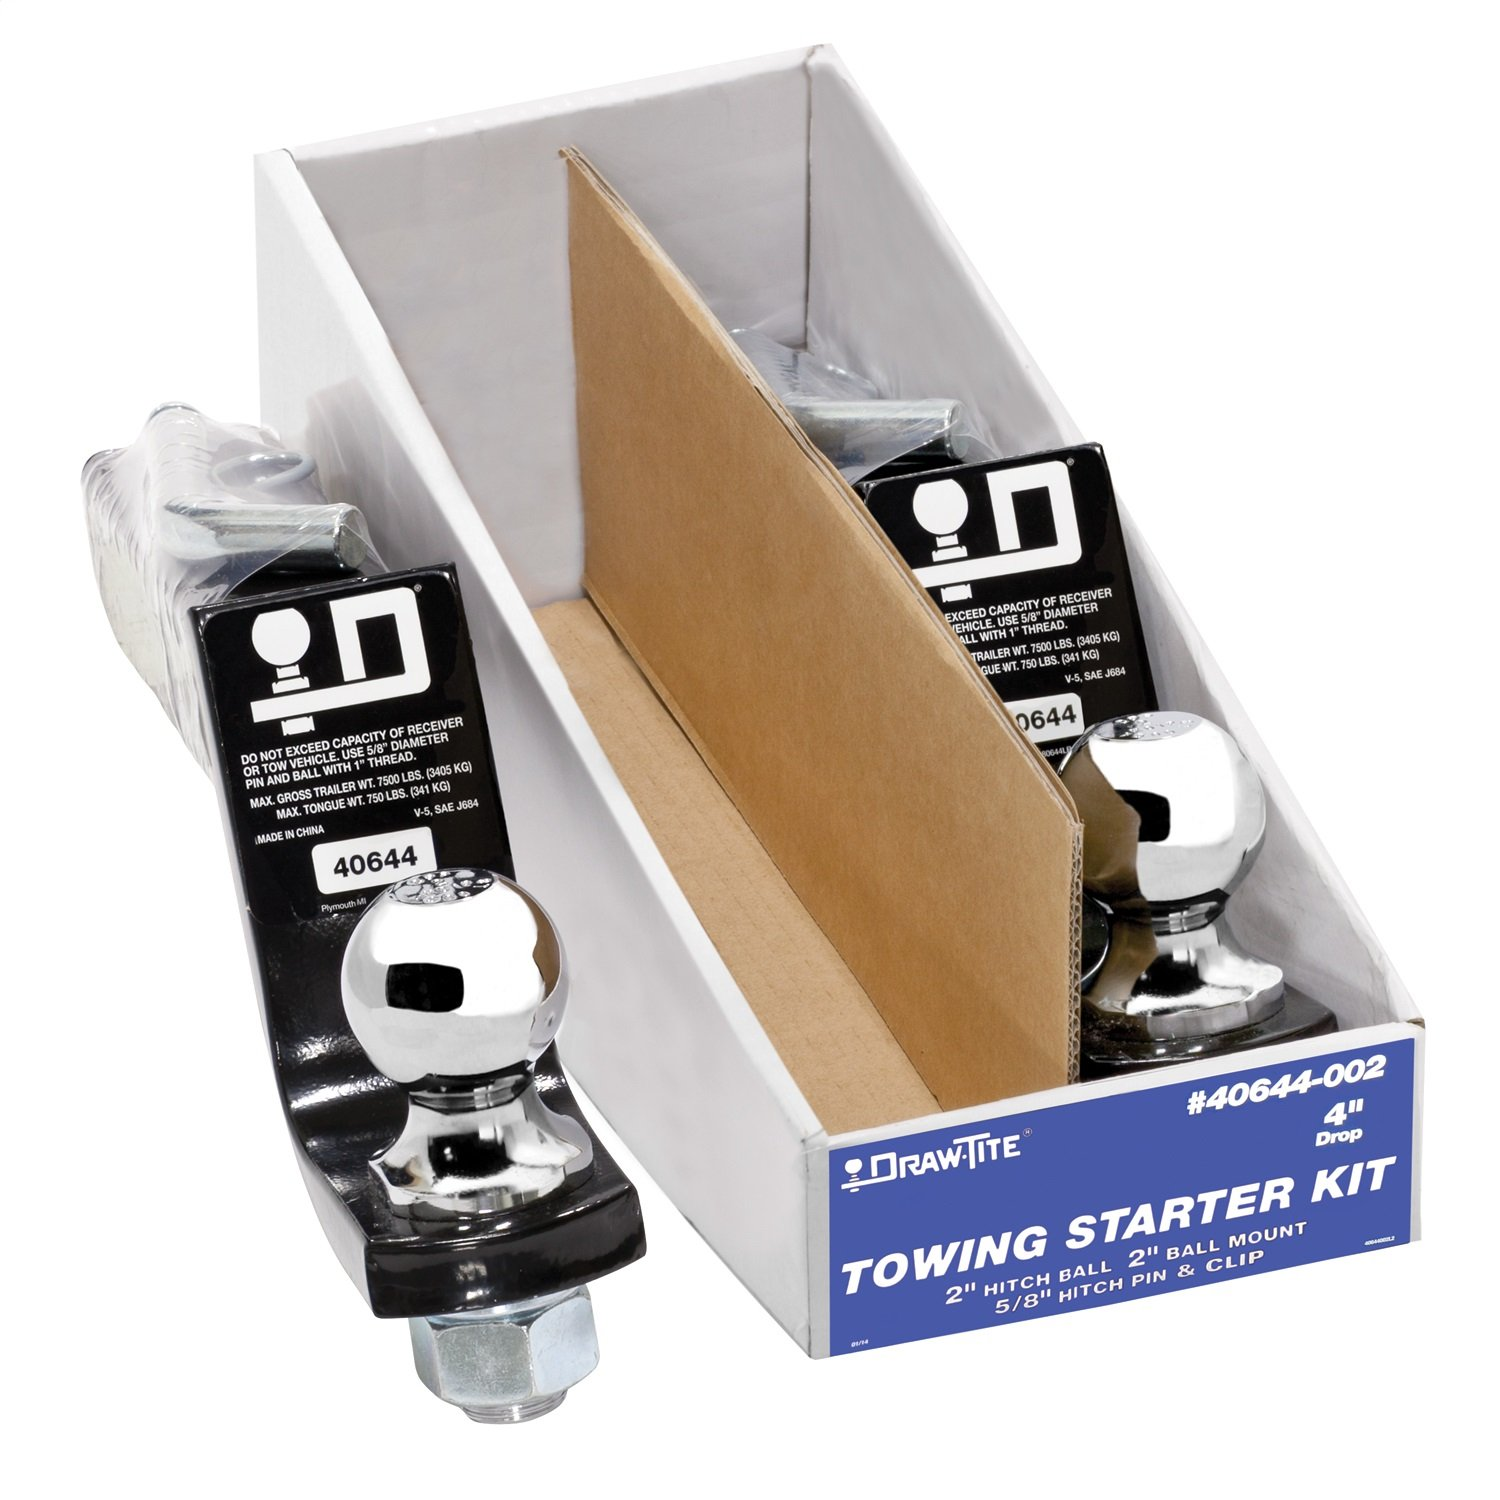 Draw-Tite Towing Starter Kit, w/Quick-Loading 2' Sq. Ball Mount 40644-002 w/Quick-Loading 2 Sq. Ball Mount 40644-002